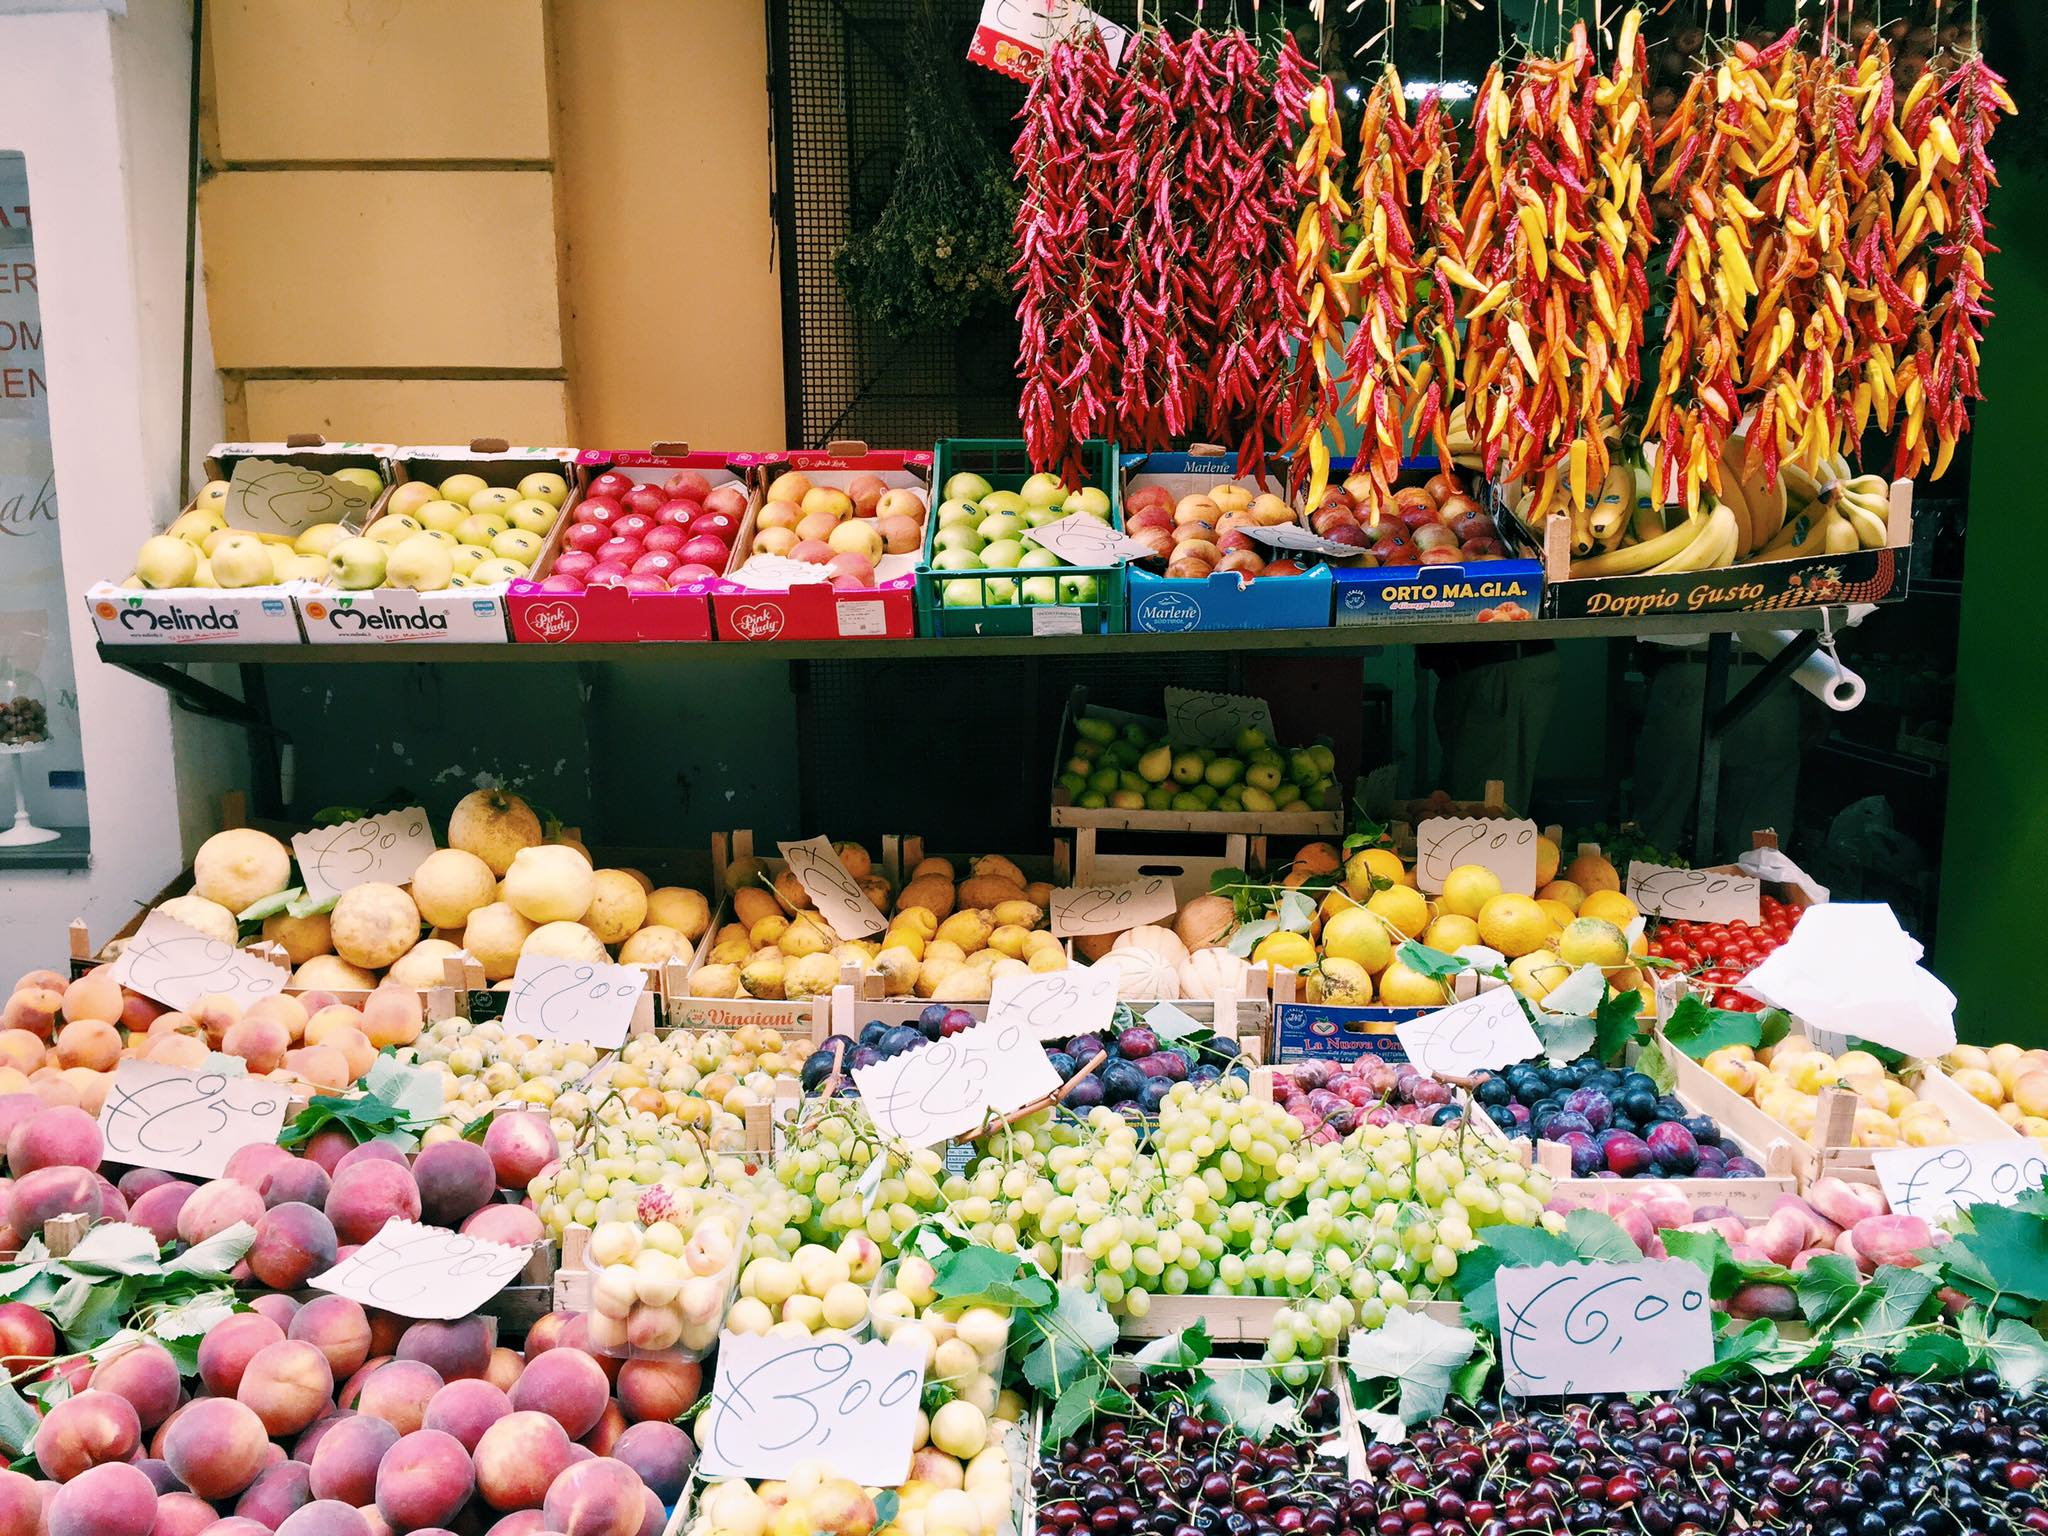 Produce stand in Sorrento